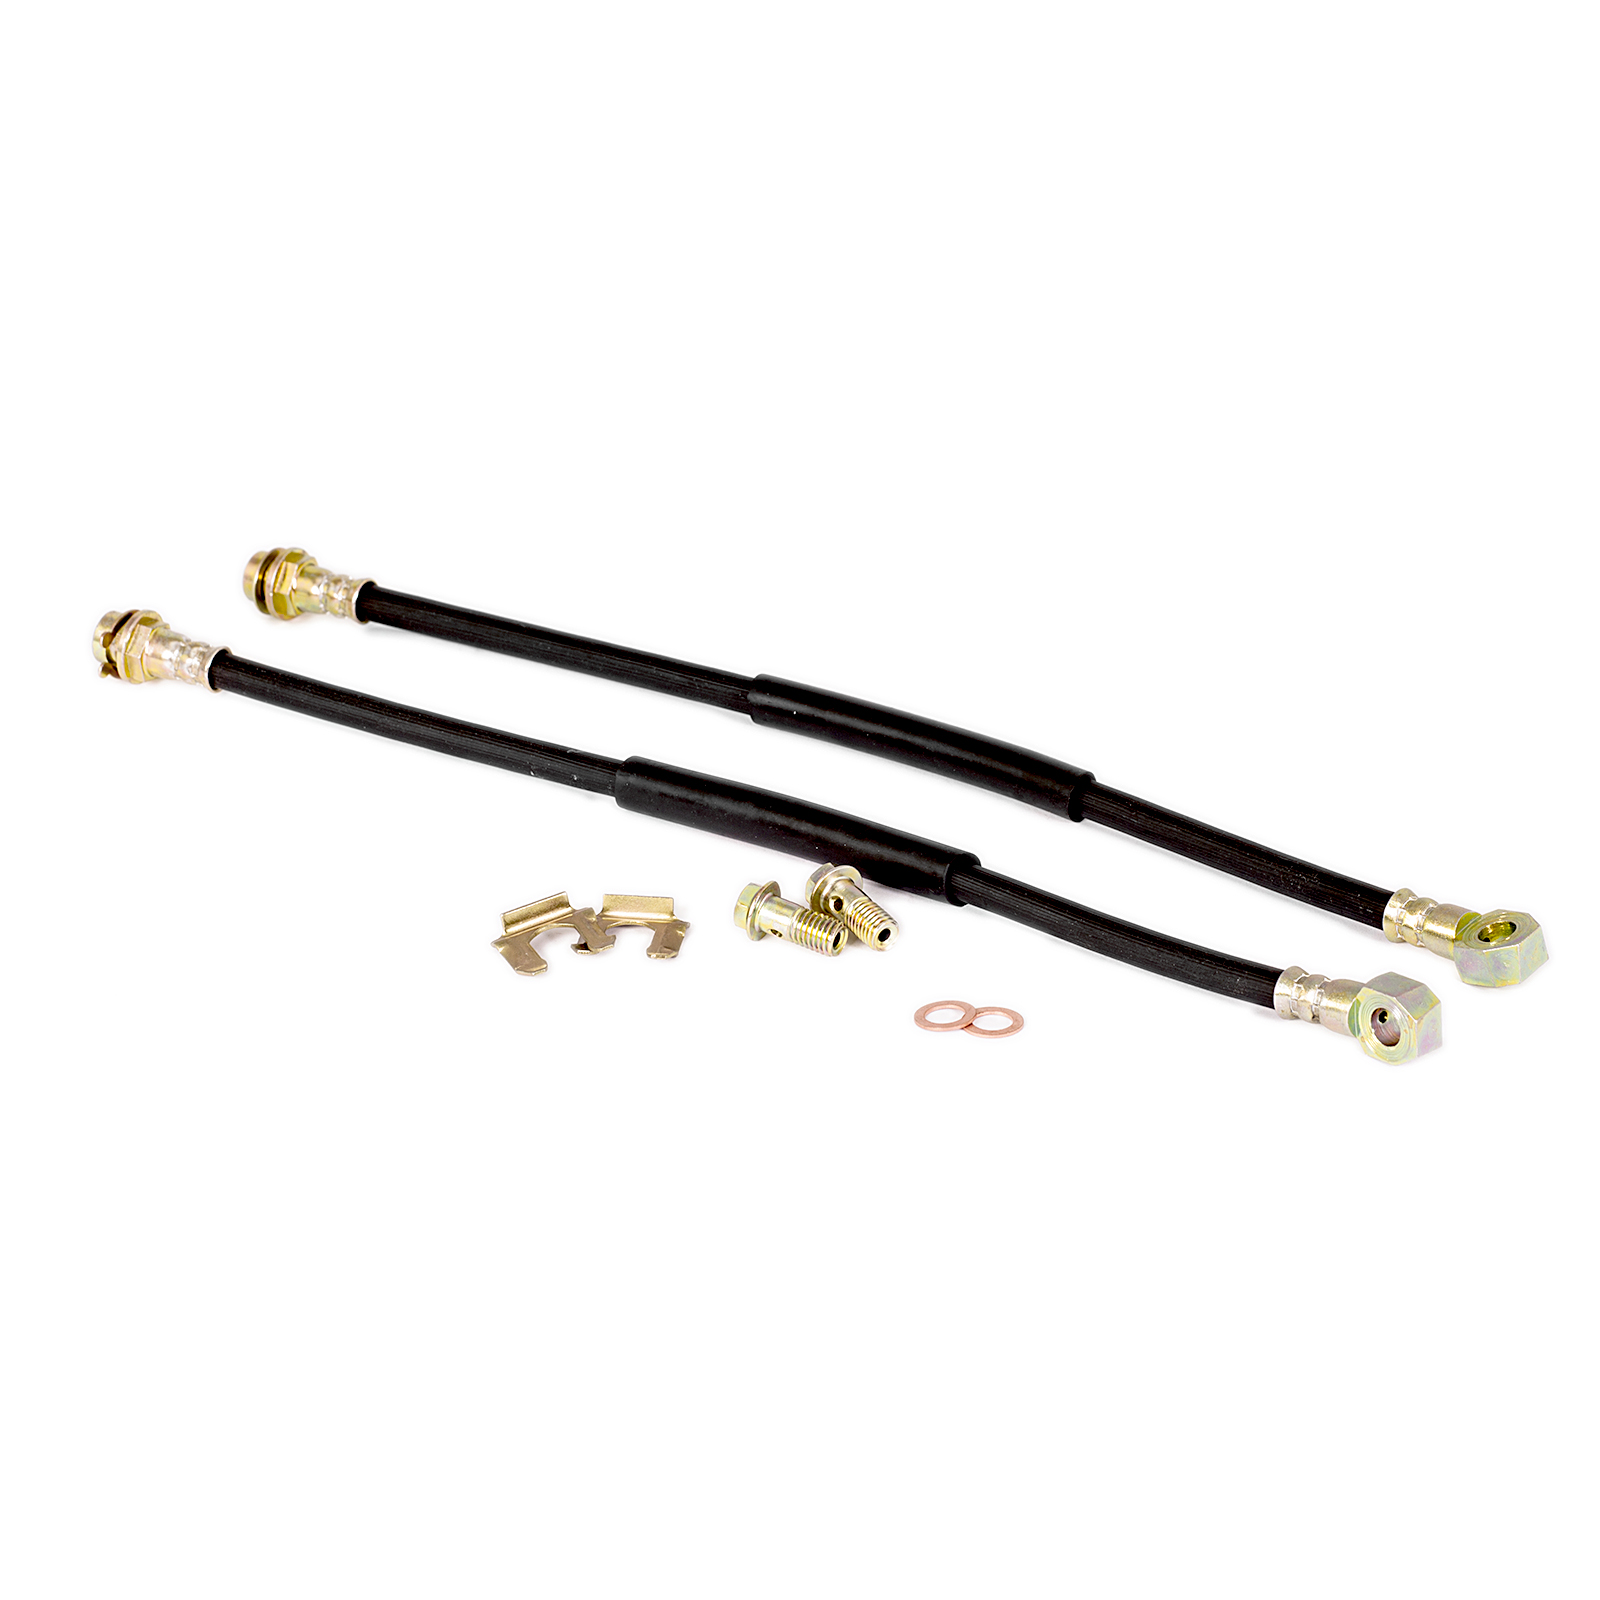 "10mm Banjo 18"" Long Rubber Brake Lines with Hardware"